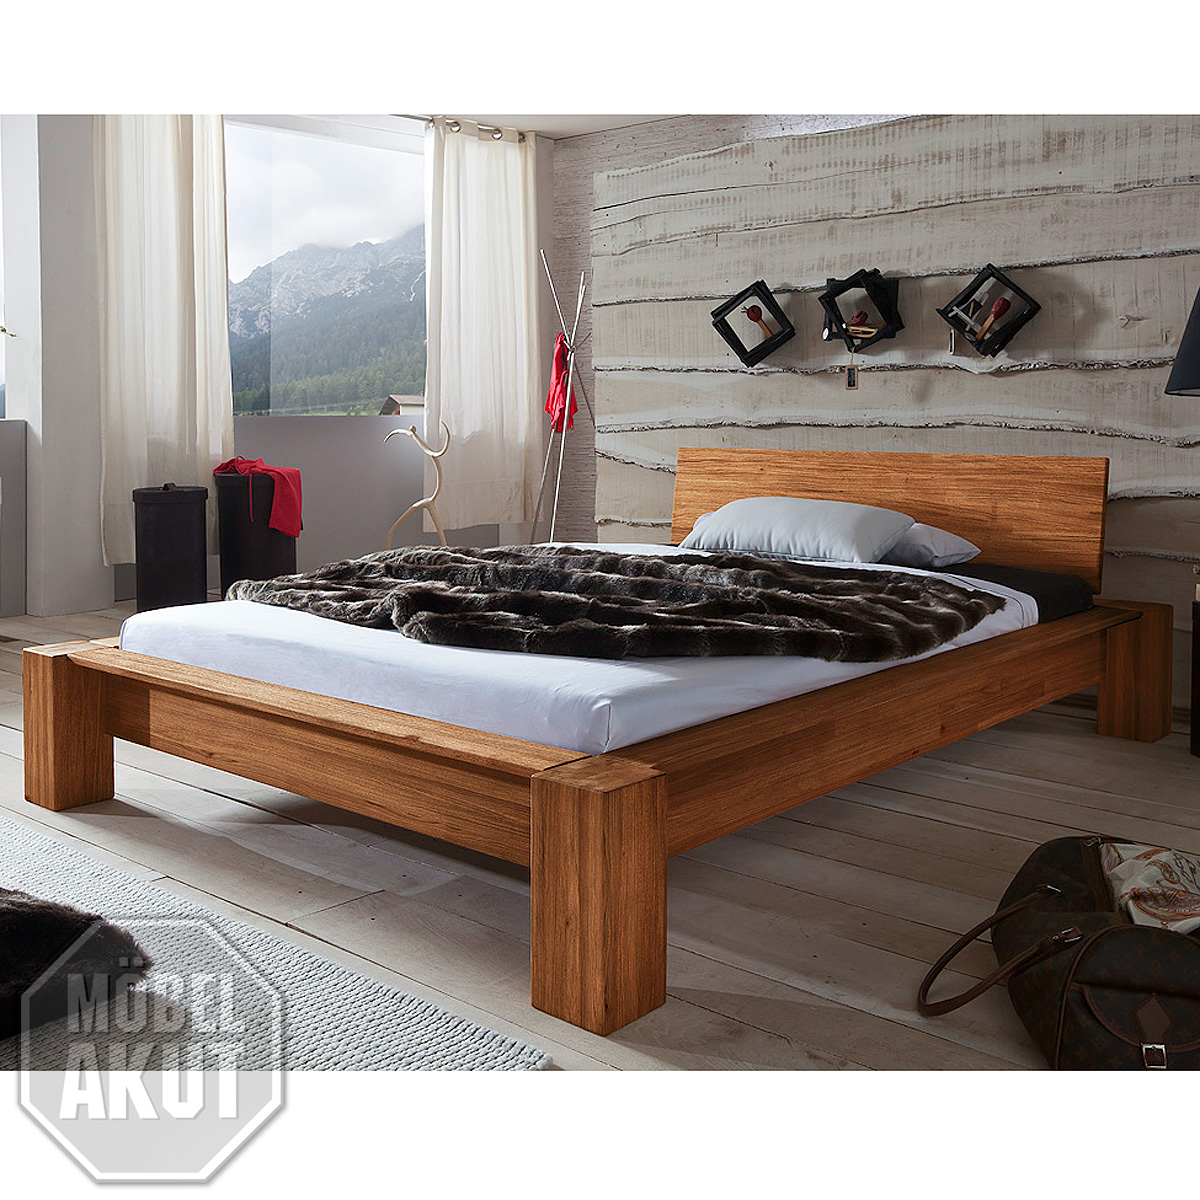 bett lena futonbett bettgestell in wild eiche massiv natur. Black Bedroom Furniture Sets. Home Design Ideas